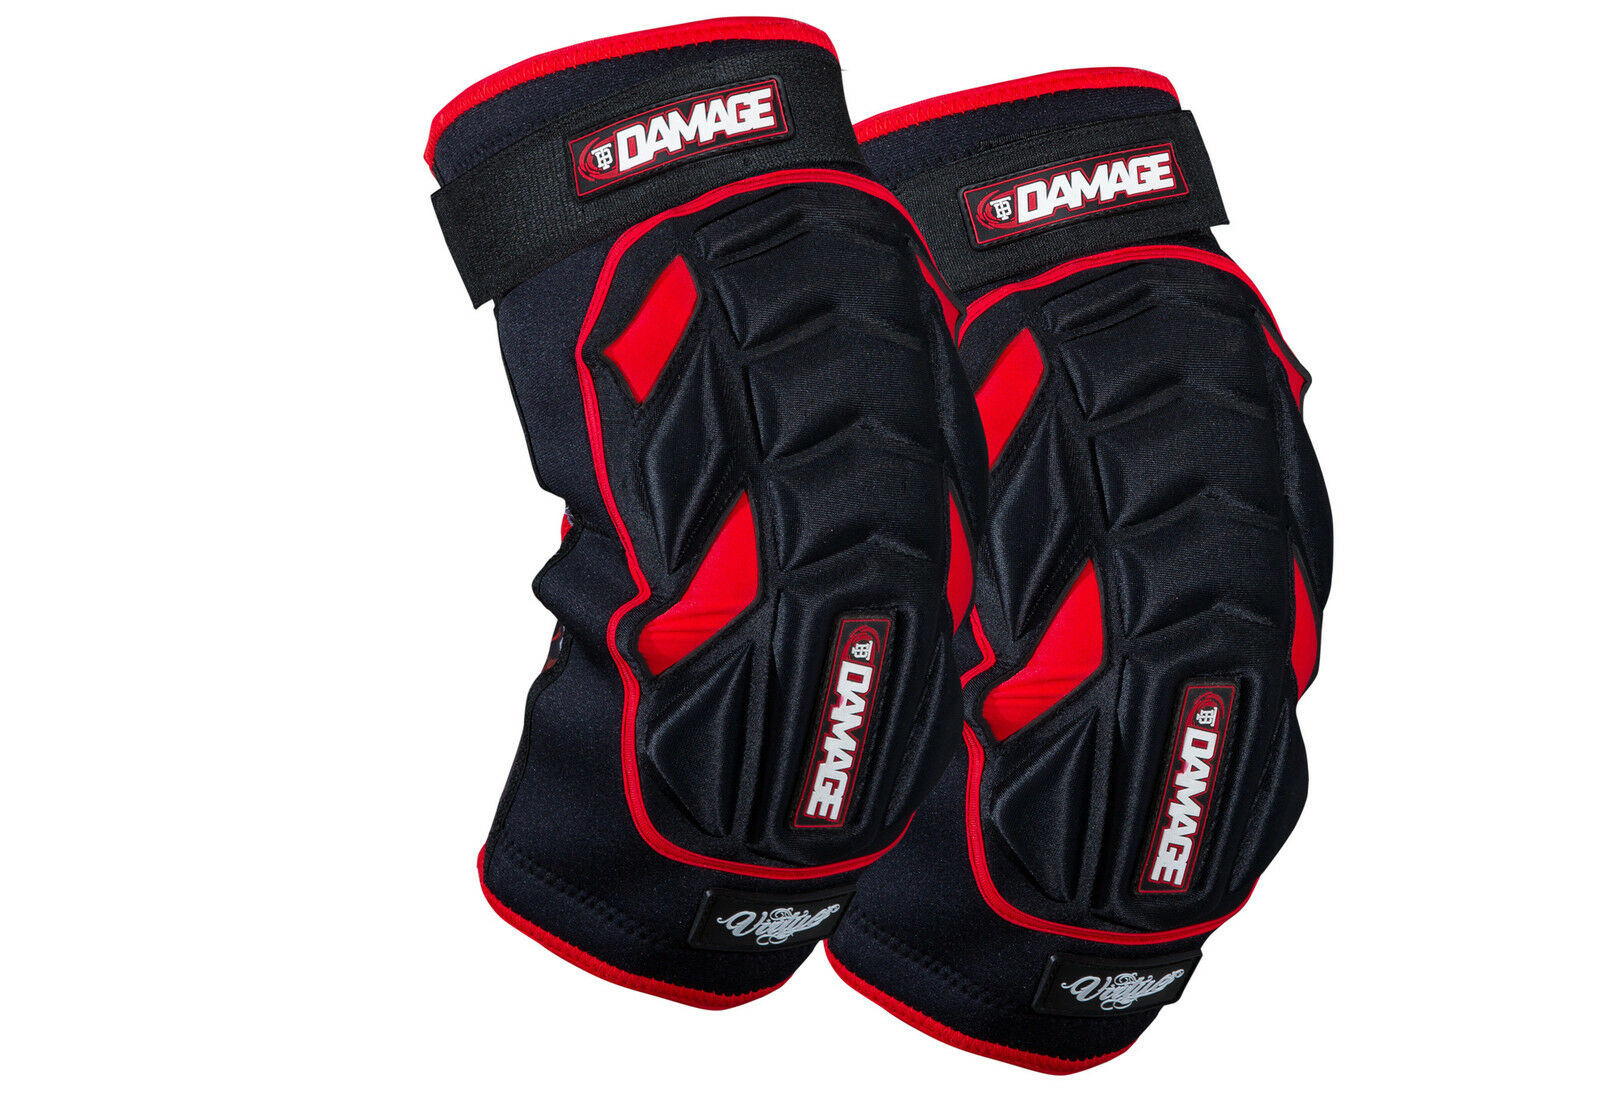 NEW Paintball Tampa Bay Damage Knee Pads